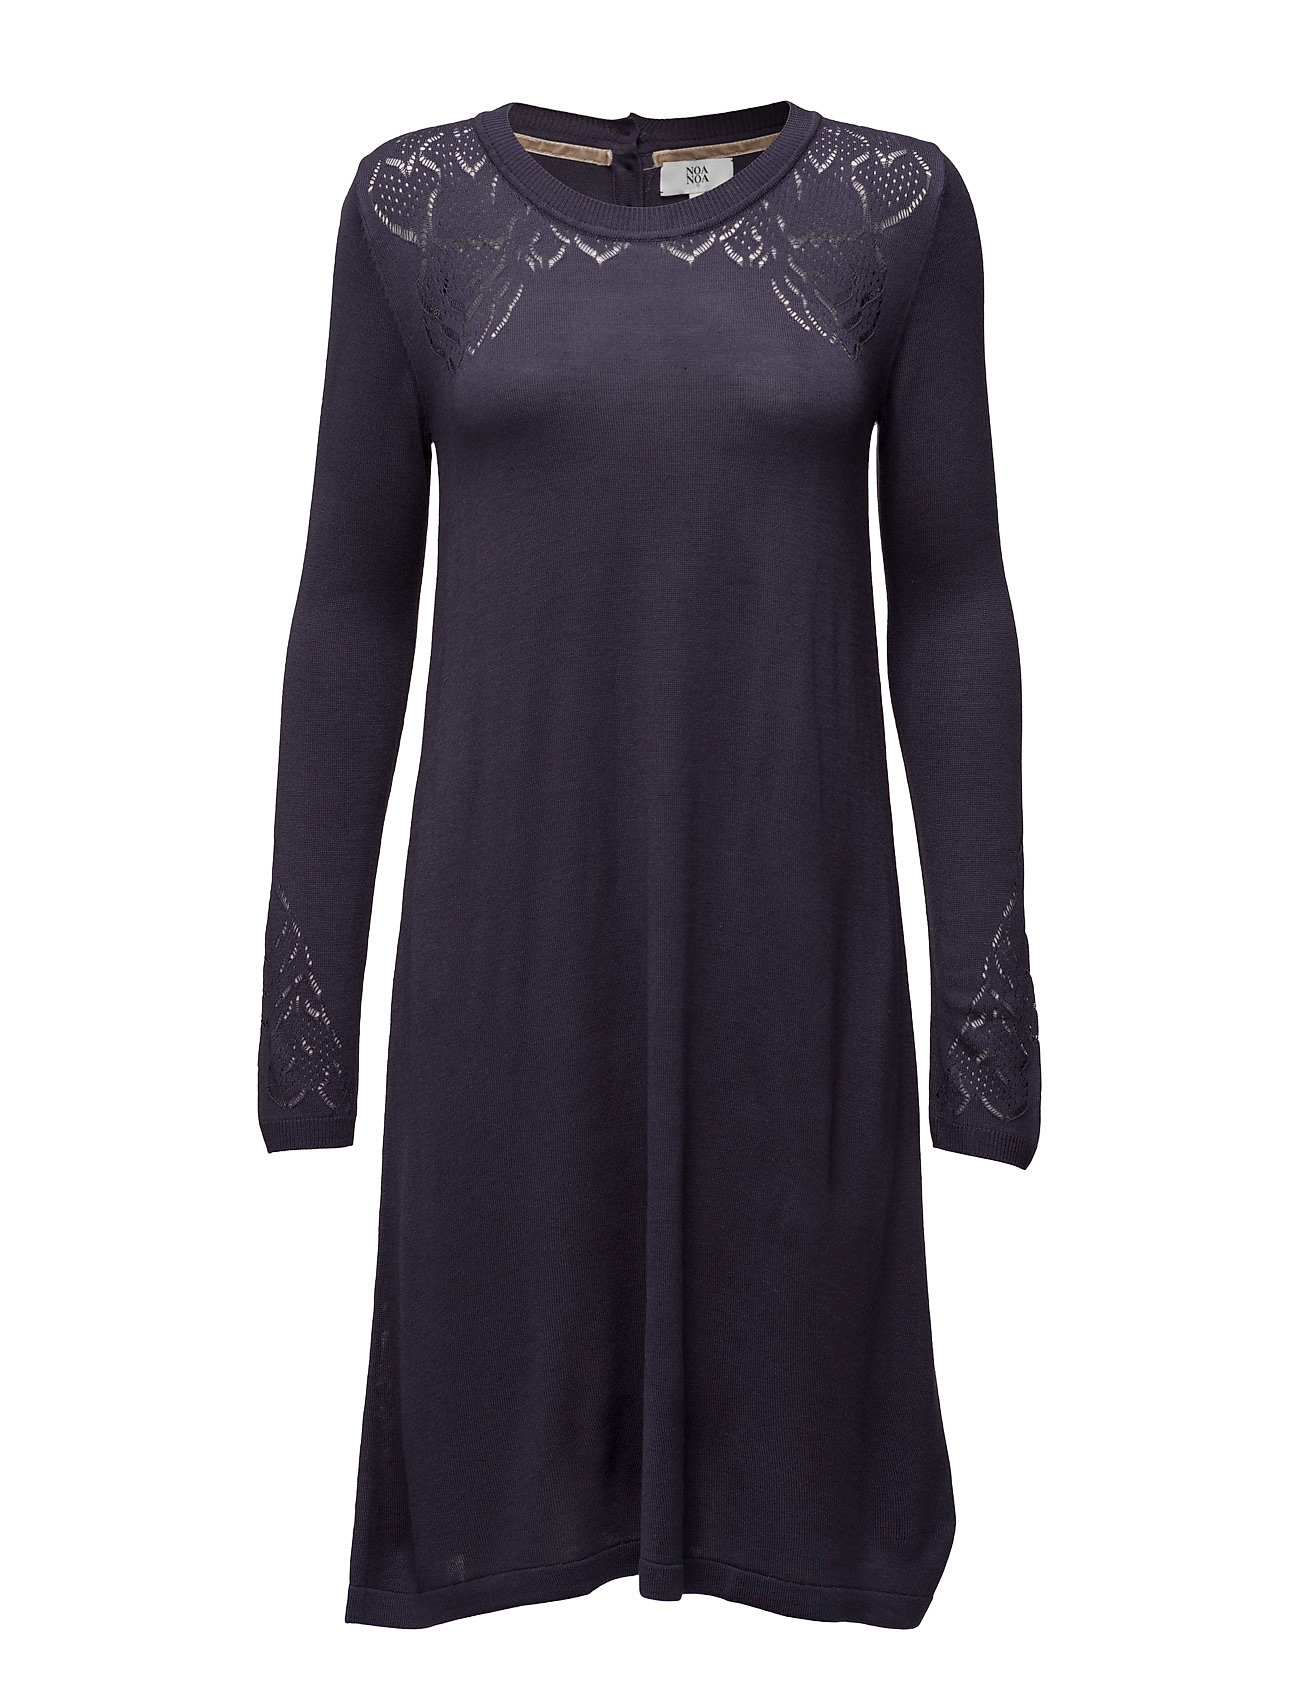 Dress Long Sleeve Noa Noa Knælange & mellemlange til Damer i